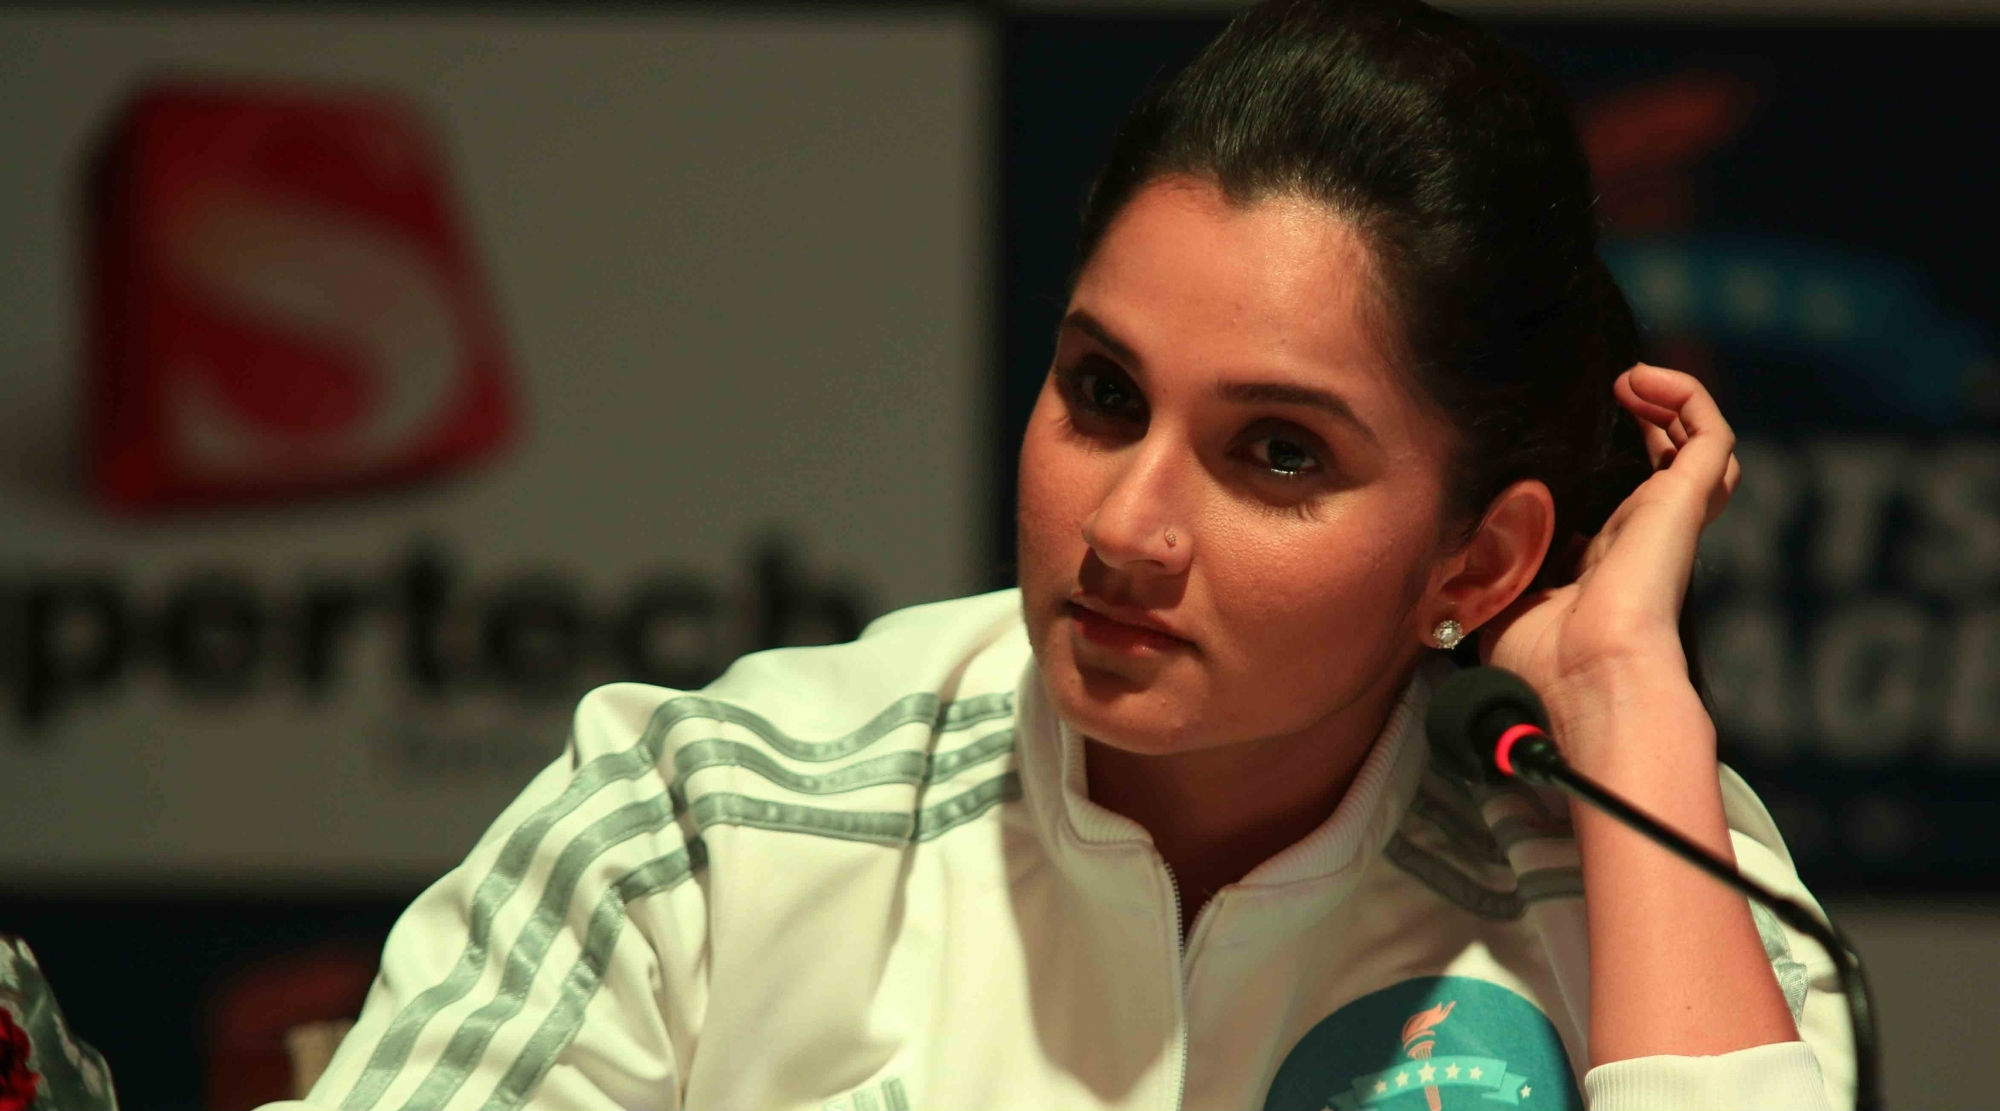 Sania Mirza Steps Forward to Raise Funds for Daily Wage Workers Affected by Lockdown During Coronavirus Pandemic